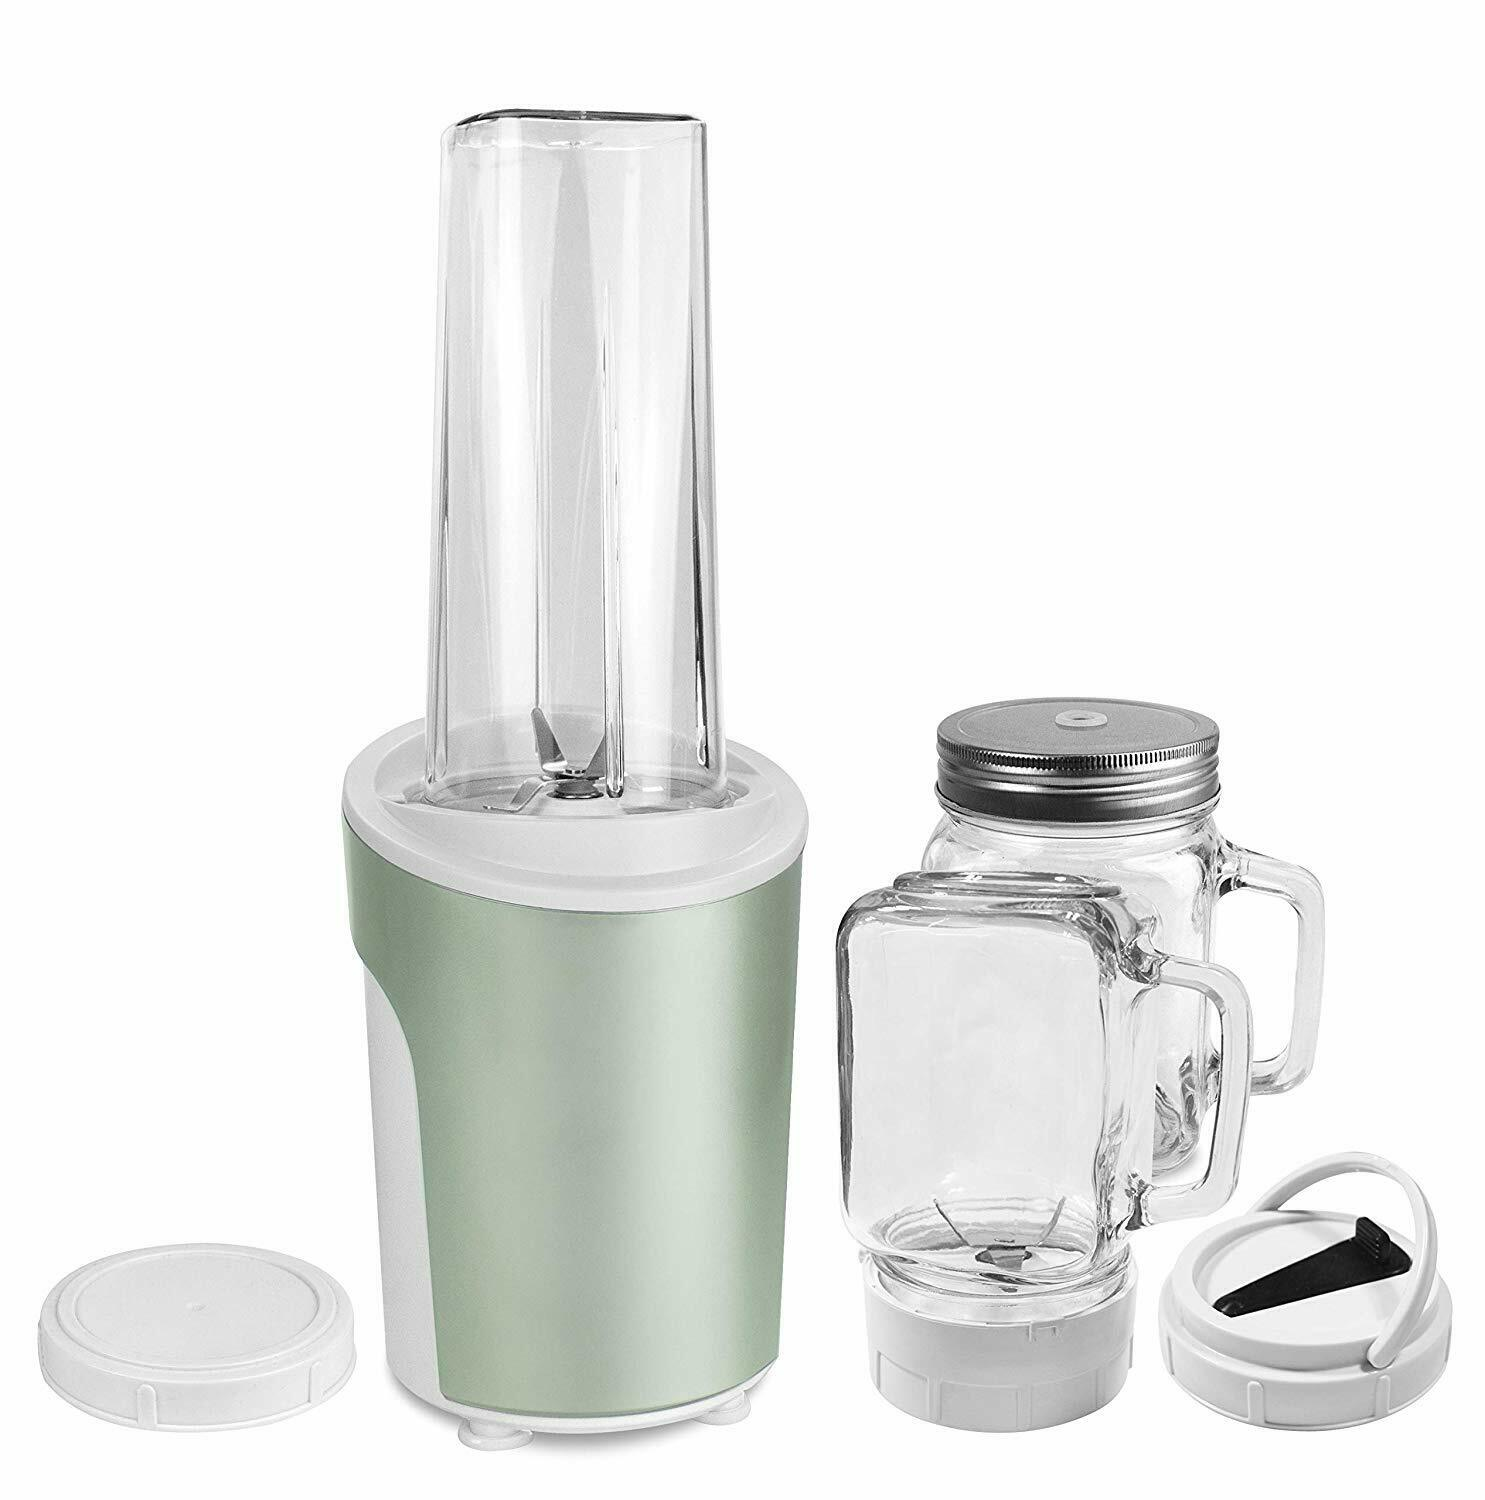 Venga! - Mixer and Blender for Smoothies 2 on 1 of 450 W - 600 ML